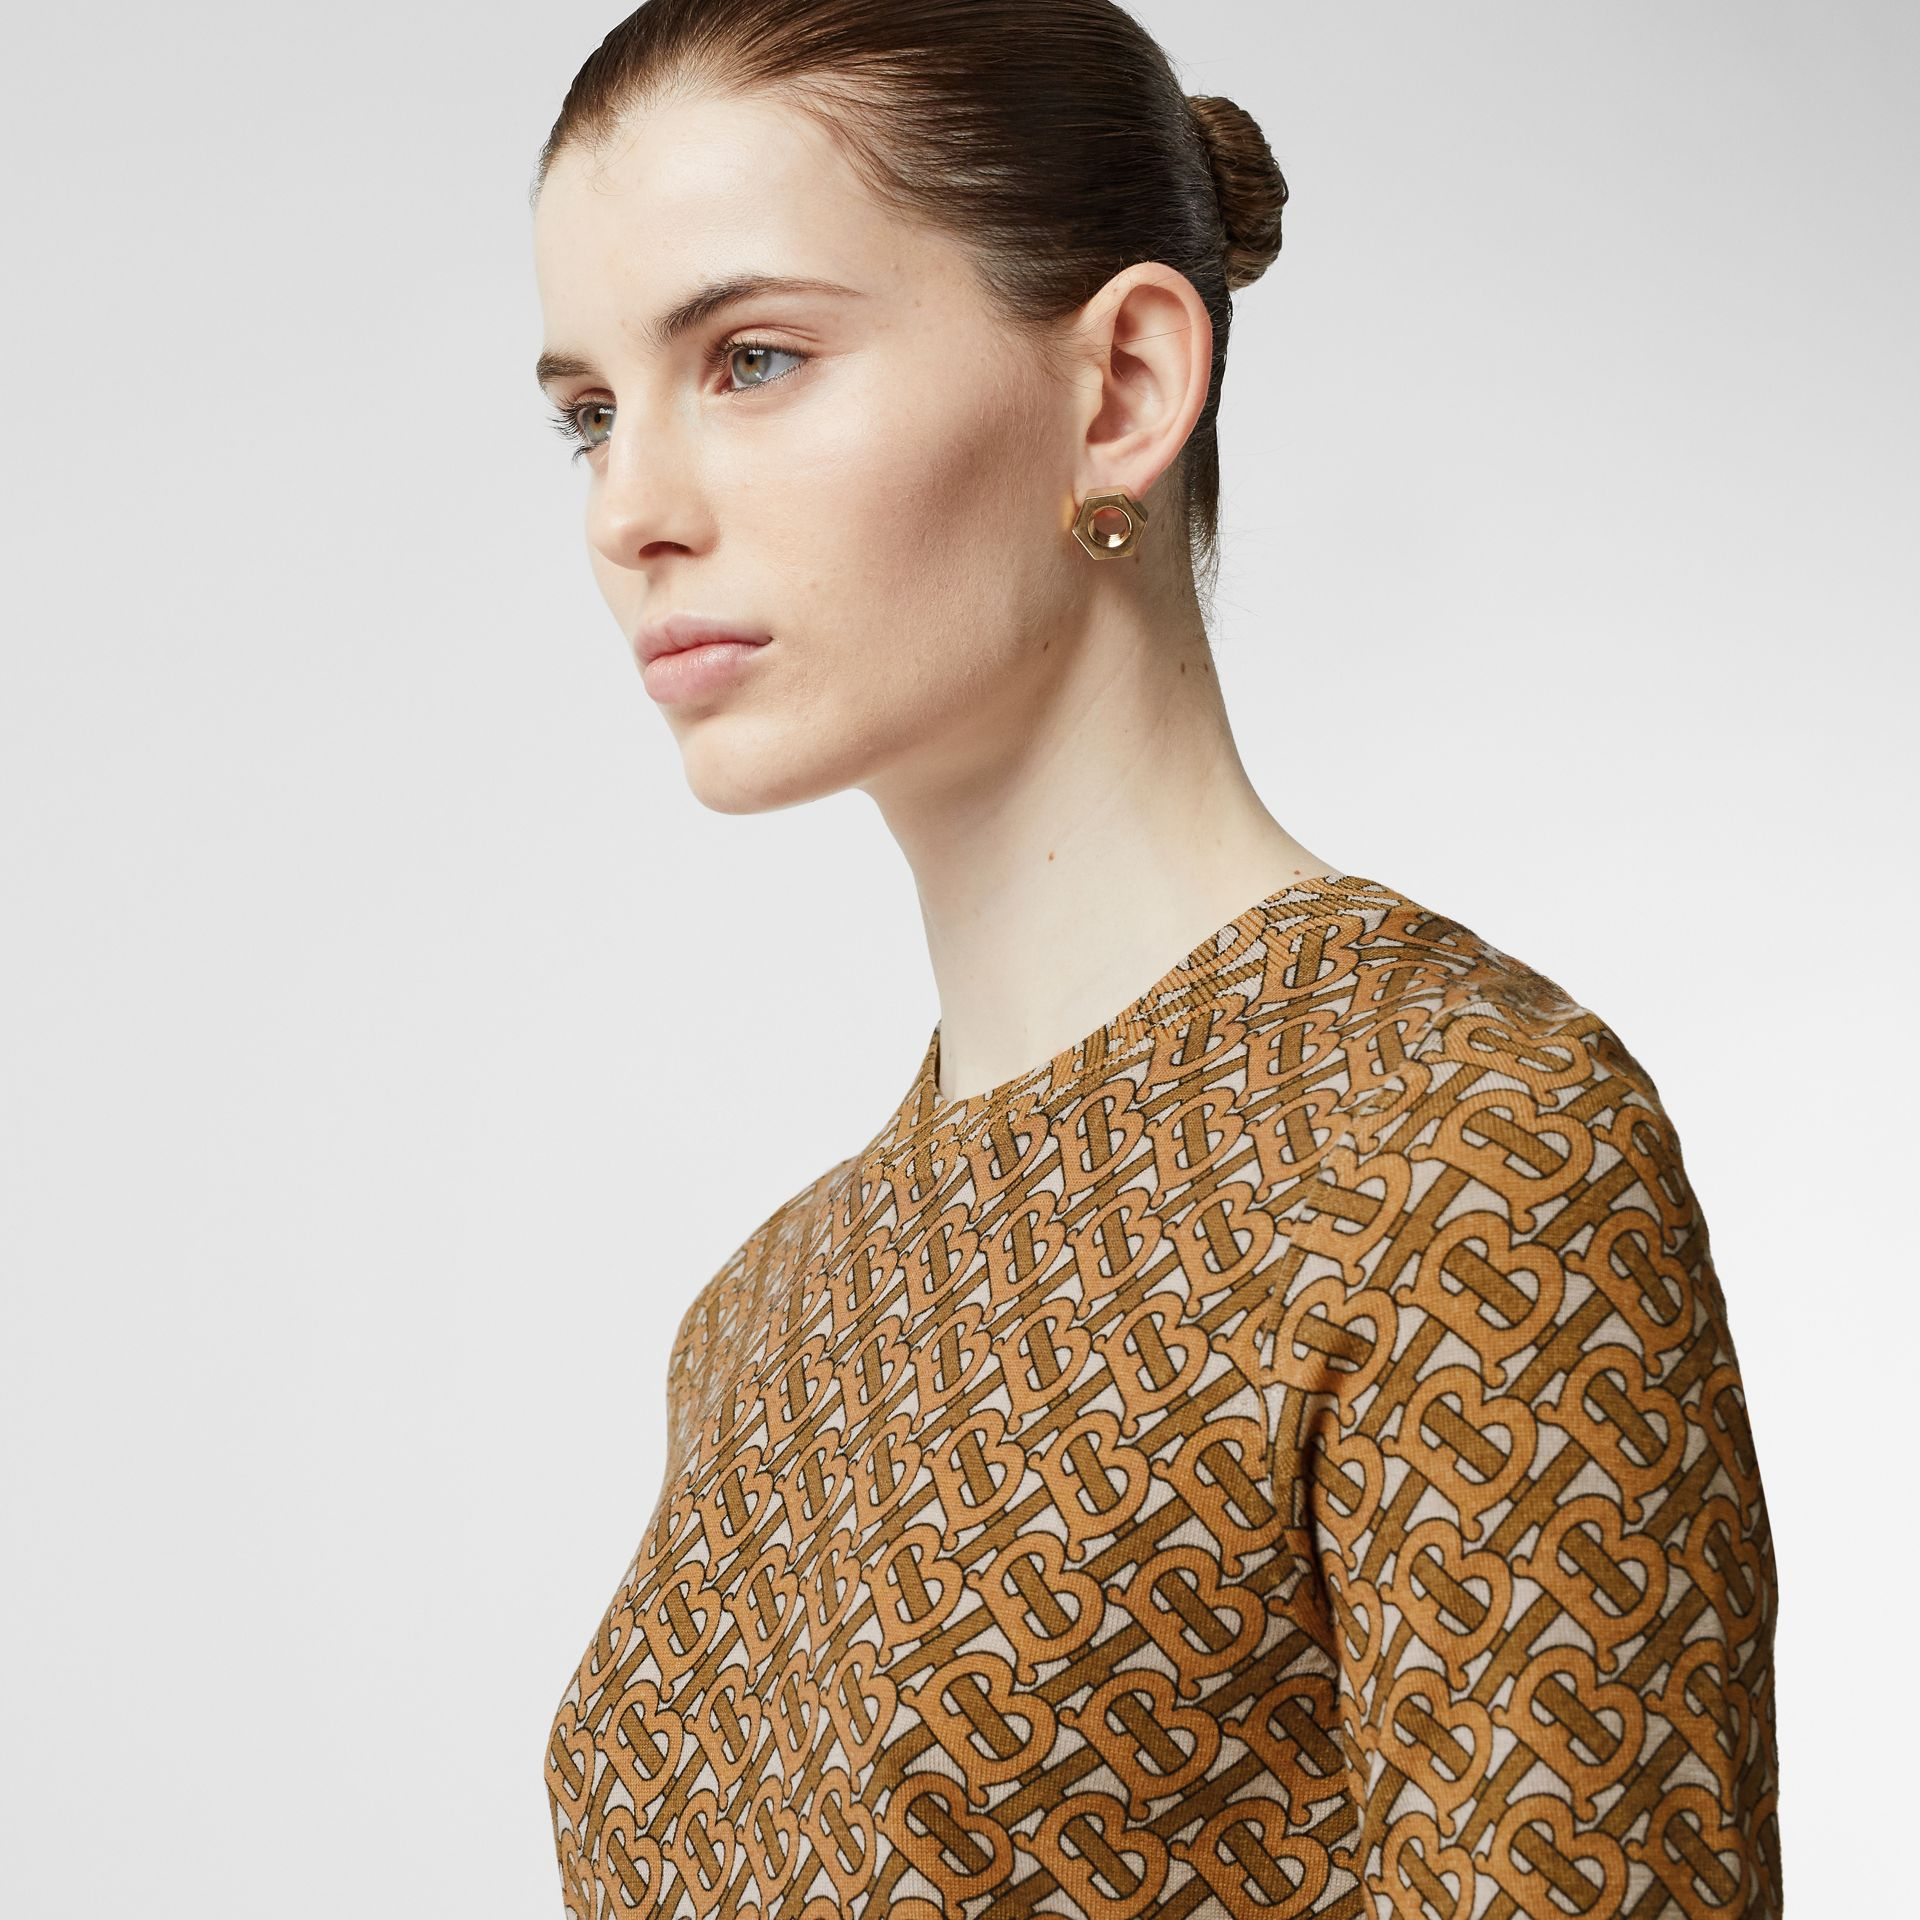 Monogram Print Merino Wool Top in Beige - Women | Burberry Singapore - gallery image 1